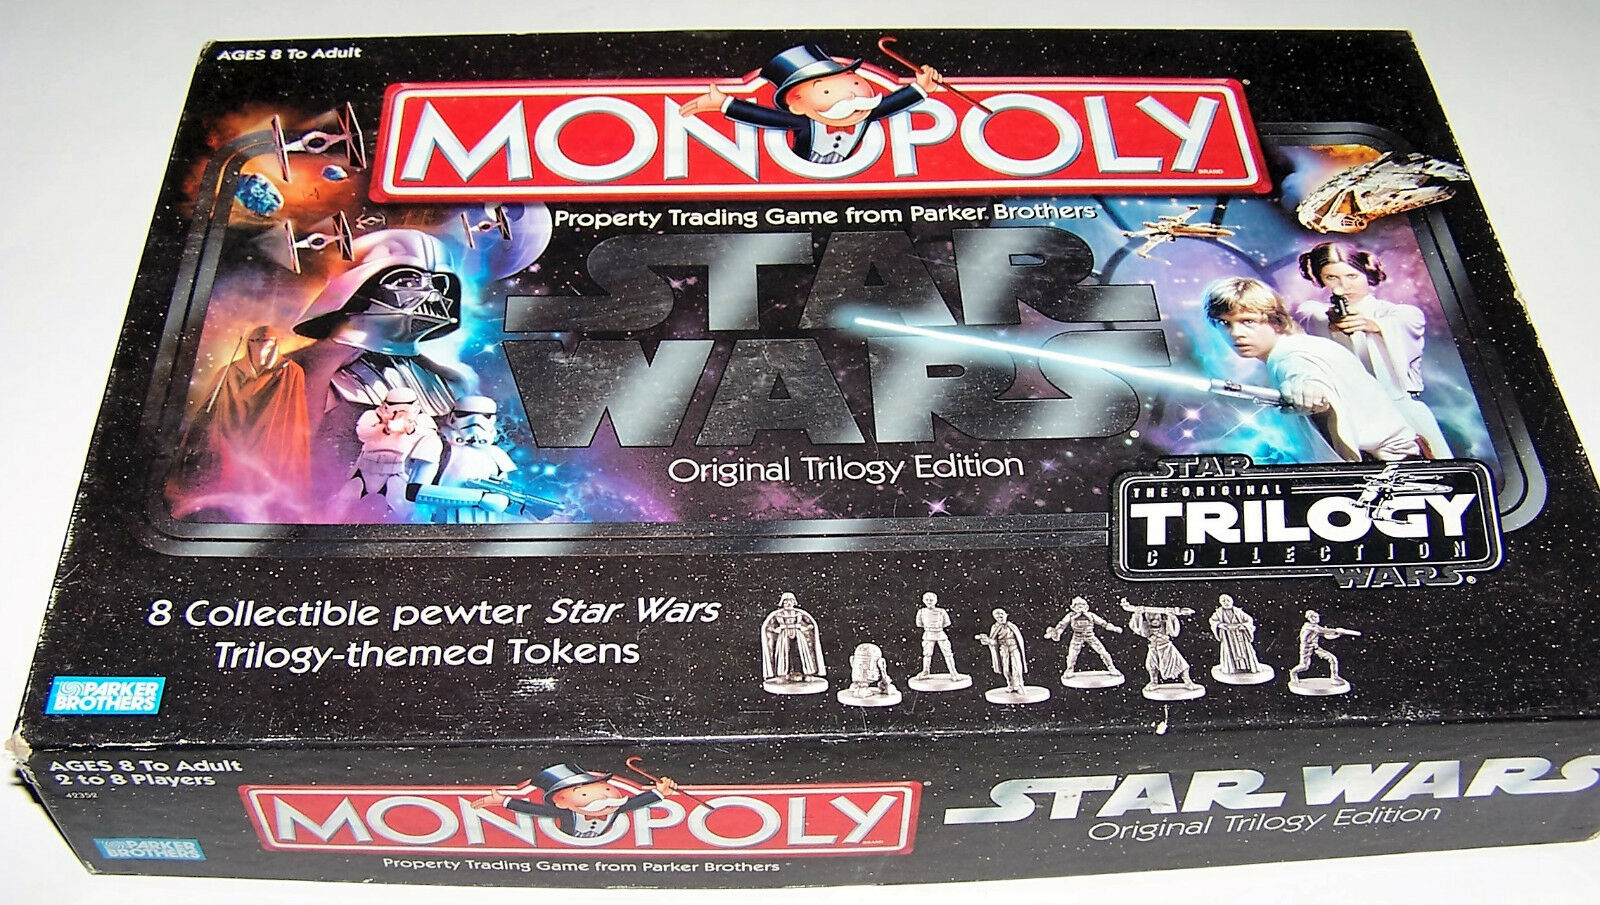 2004 Star Wars Monopoly: Classic Trilogy Edition by Parker Brothers